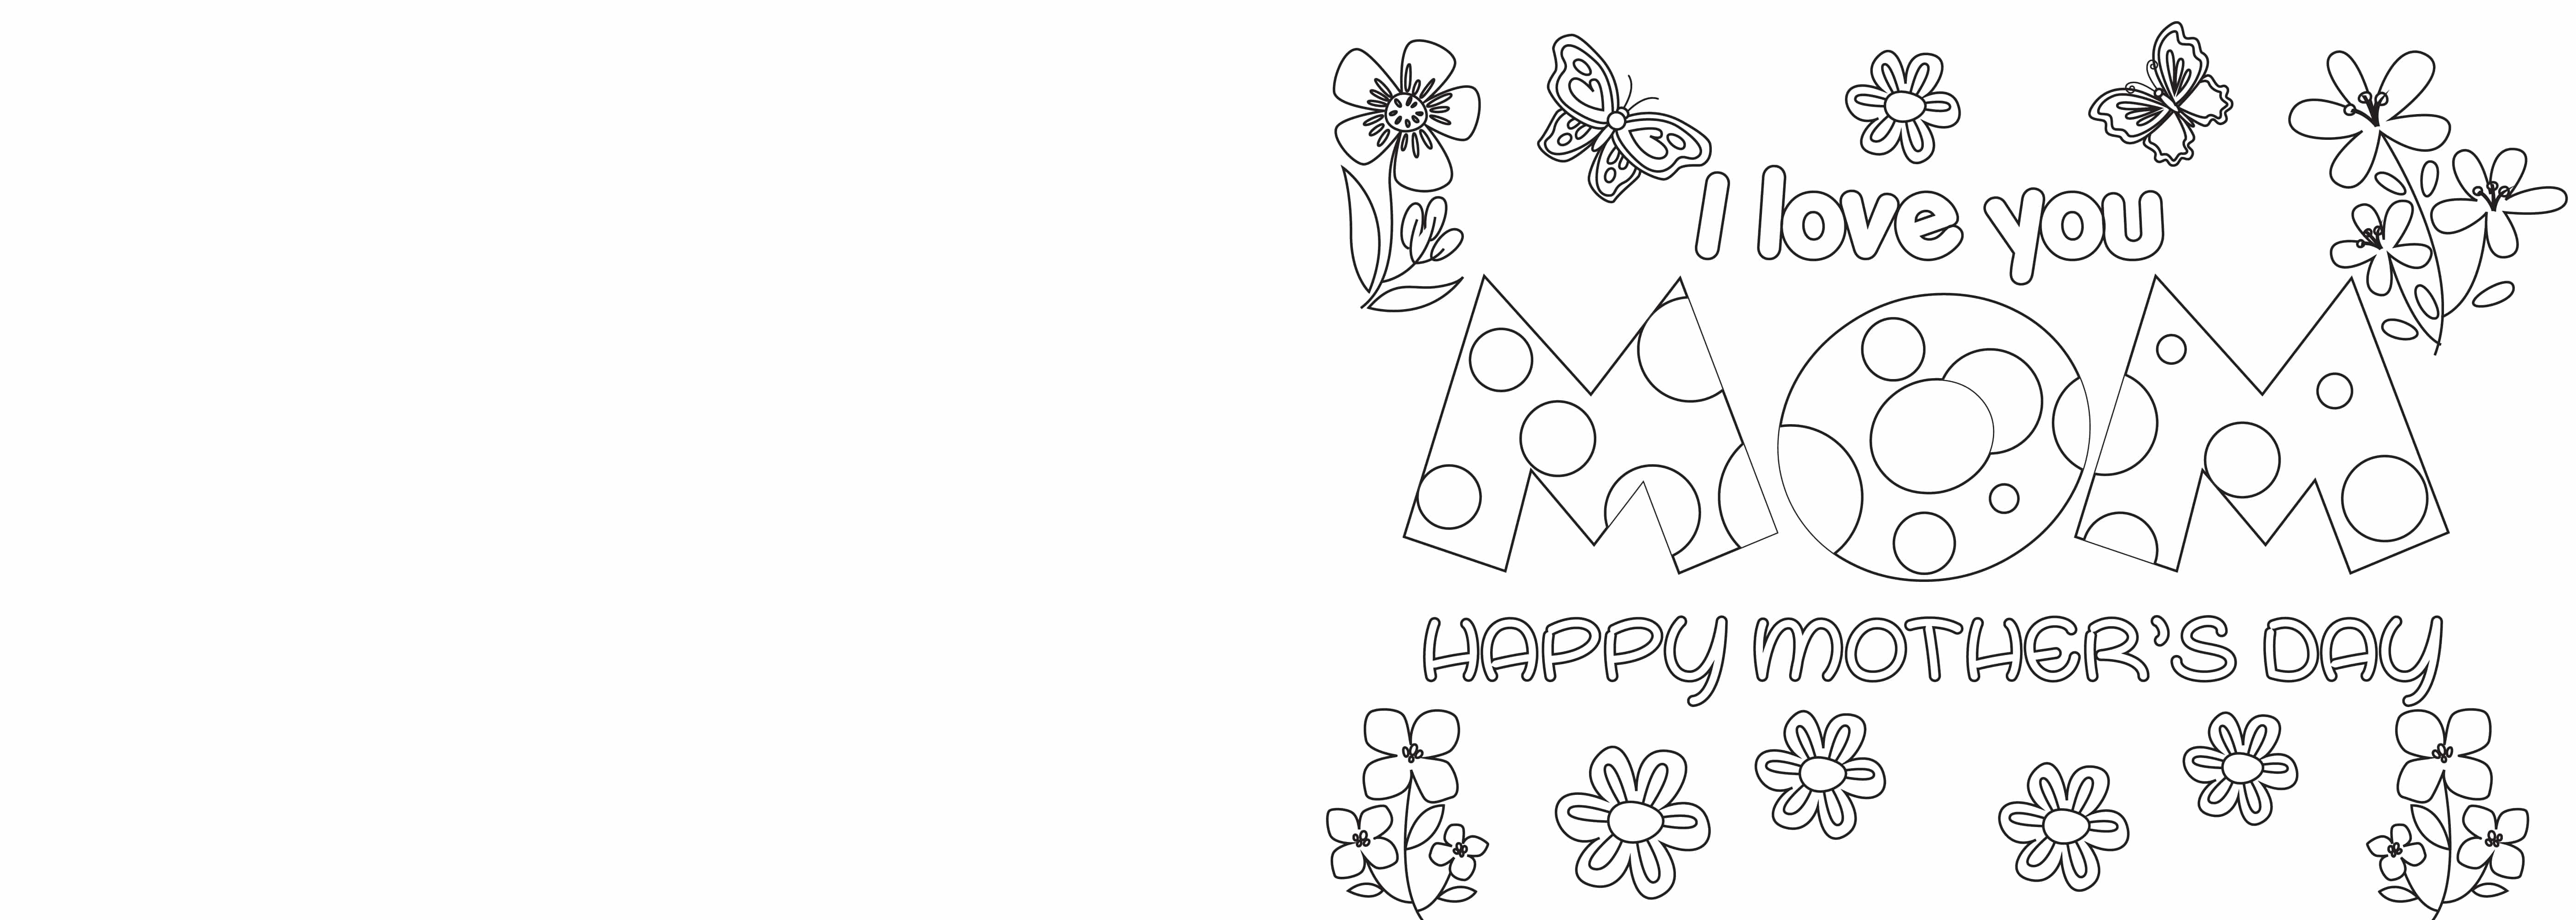 These Mother's Day coloring cards are filled with beautiful flowers and butterflies. This whimsical design is perfect for any mom.